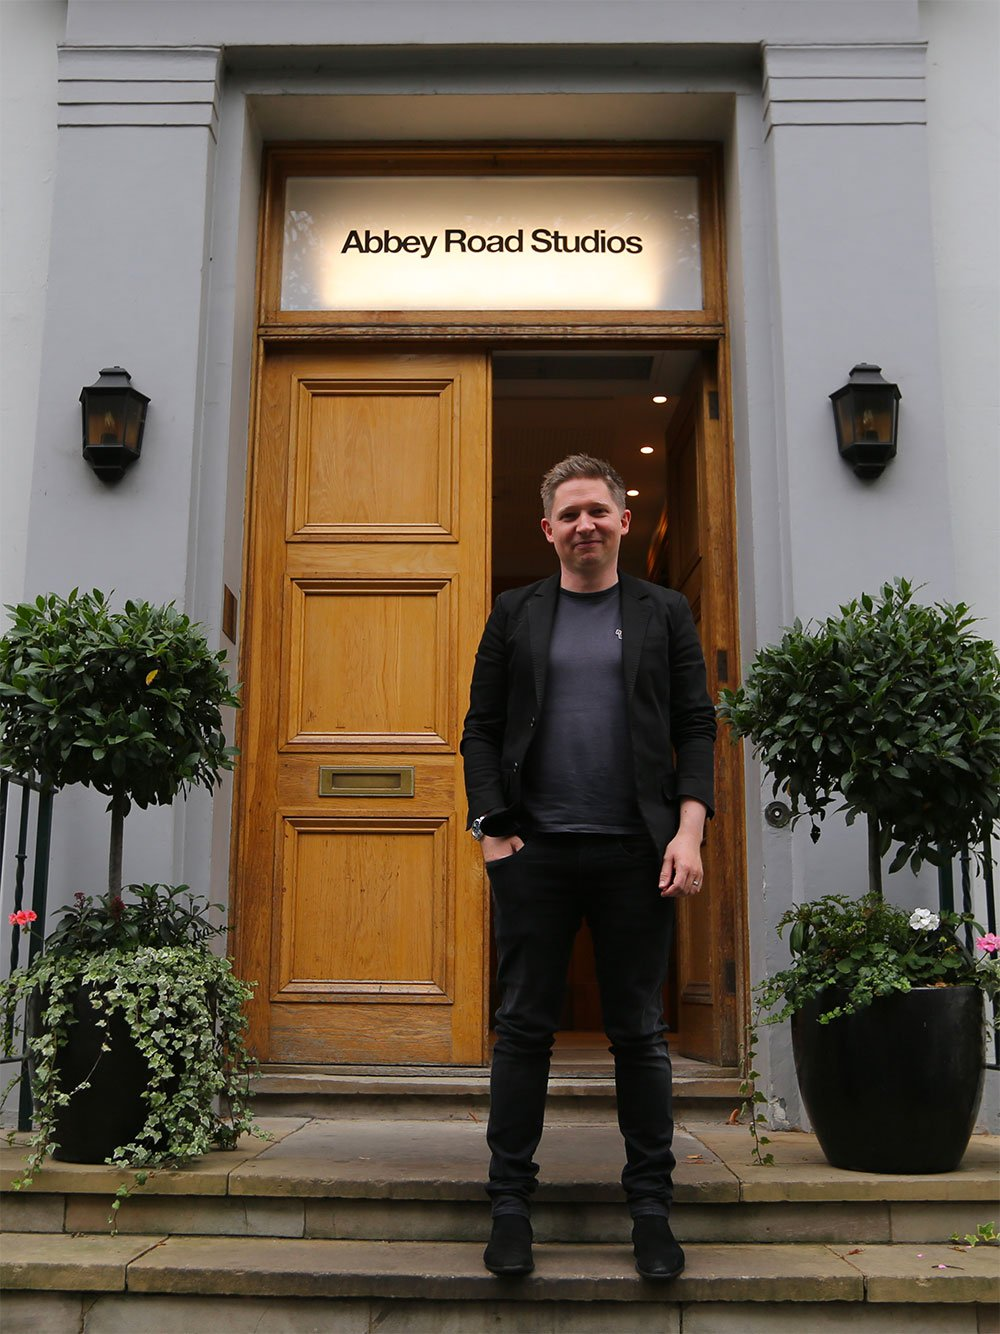 Ryan Edwards outside Abbey Road Studios